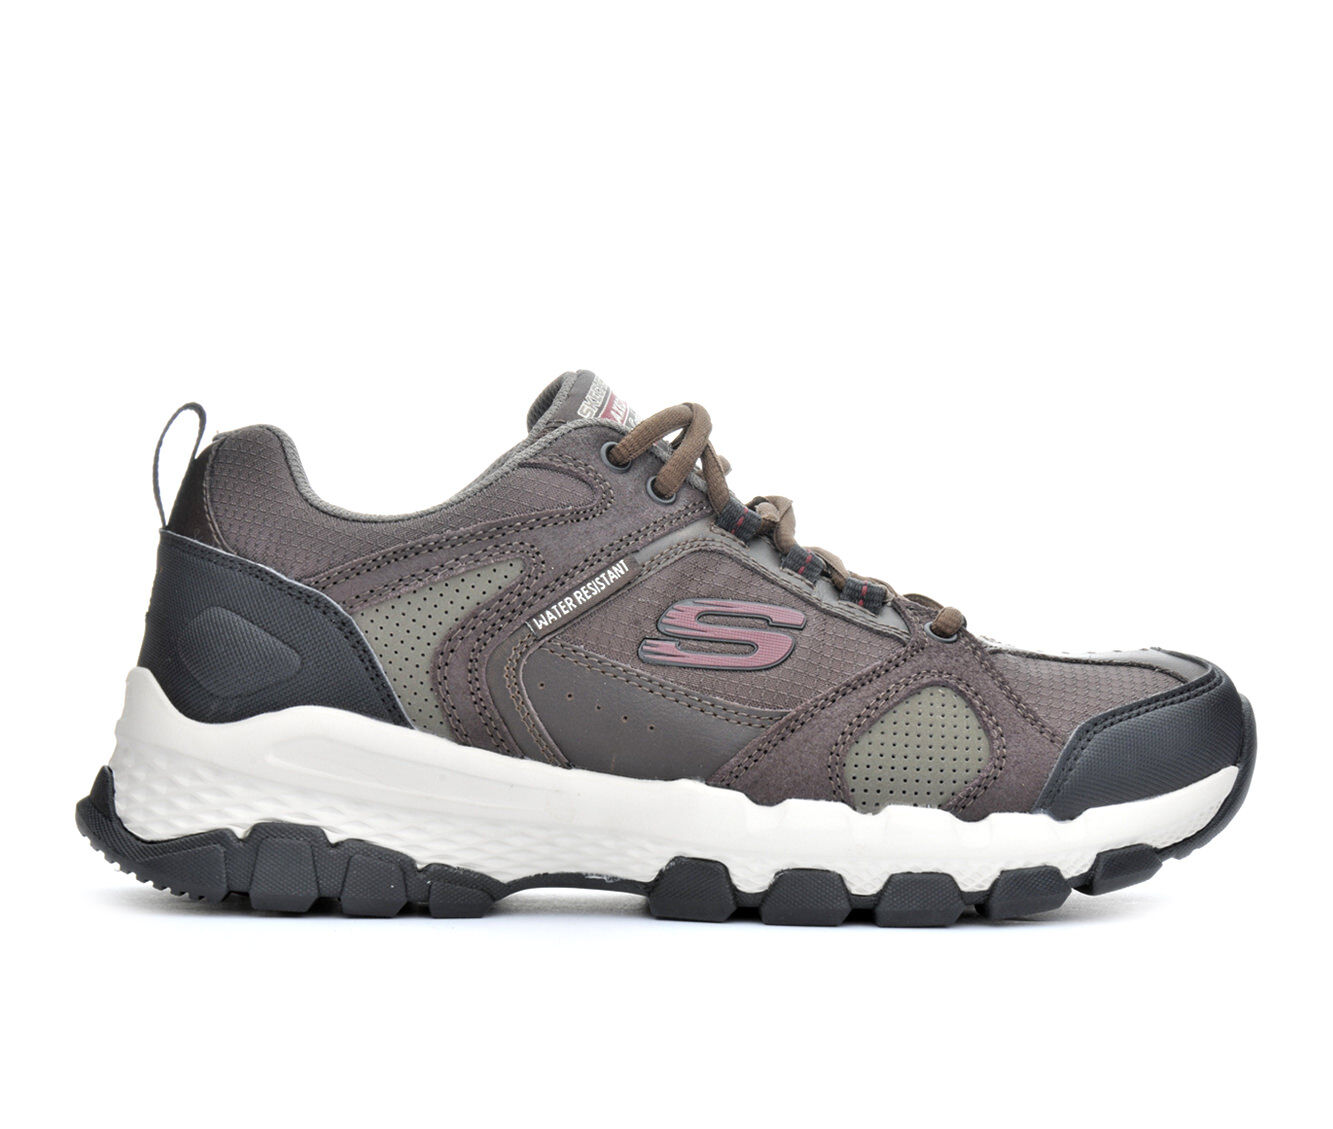 Images. Men's Skechers 51586 Outland Relaxed 2.0 Running Shoes